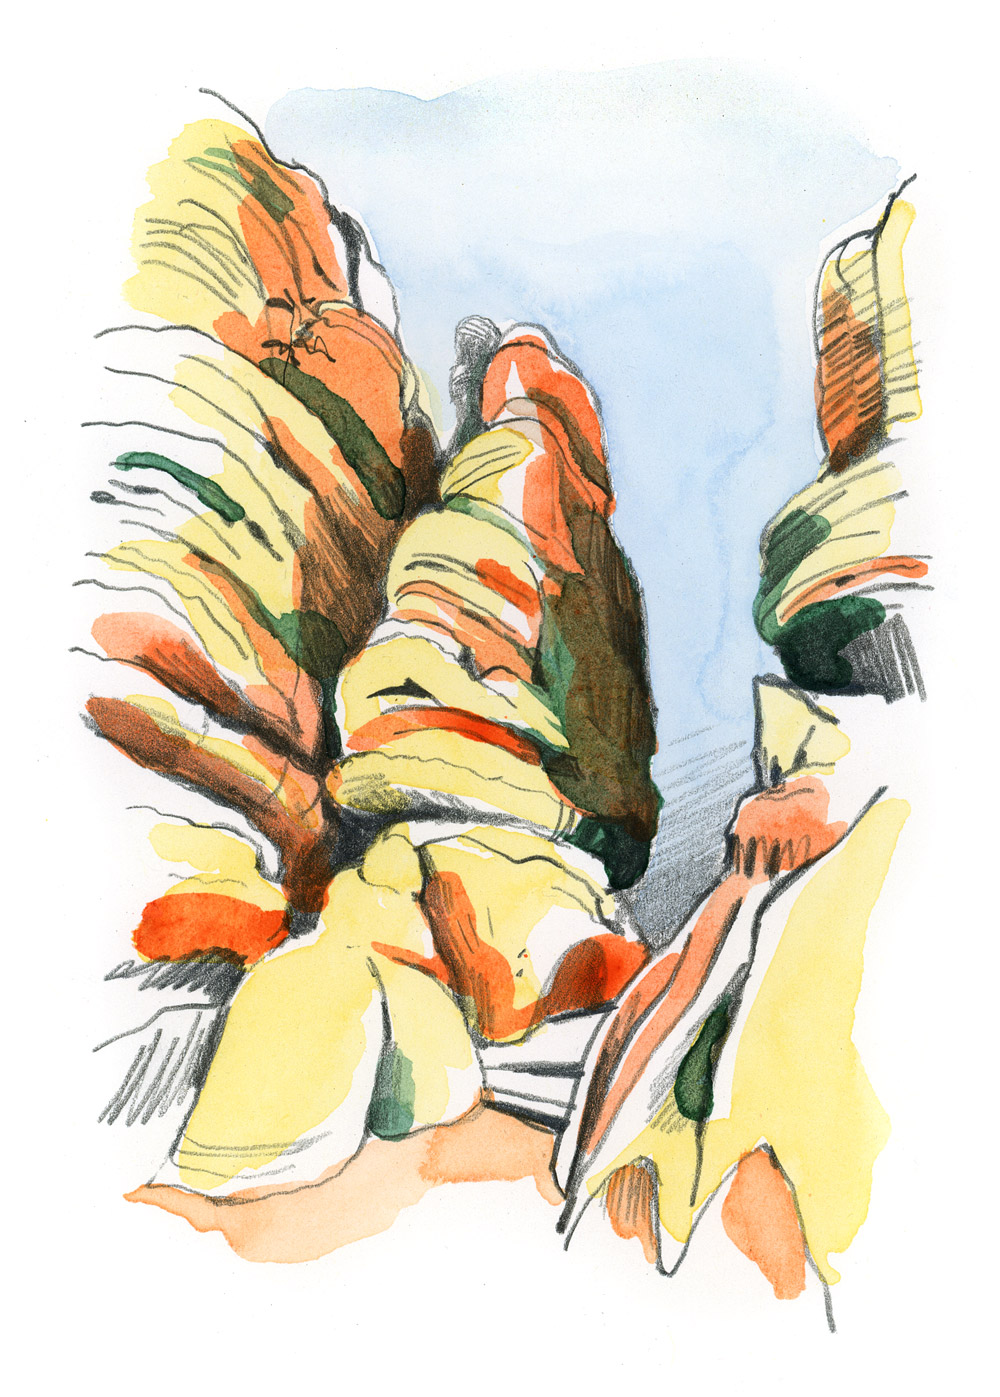 watercolor drawing of rocks